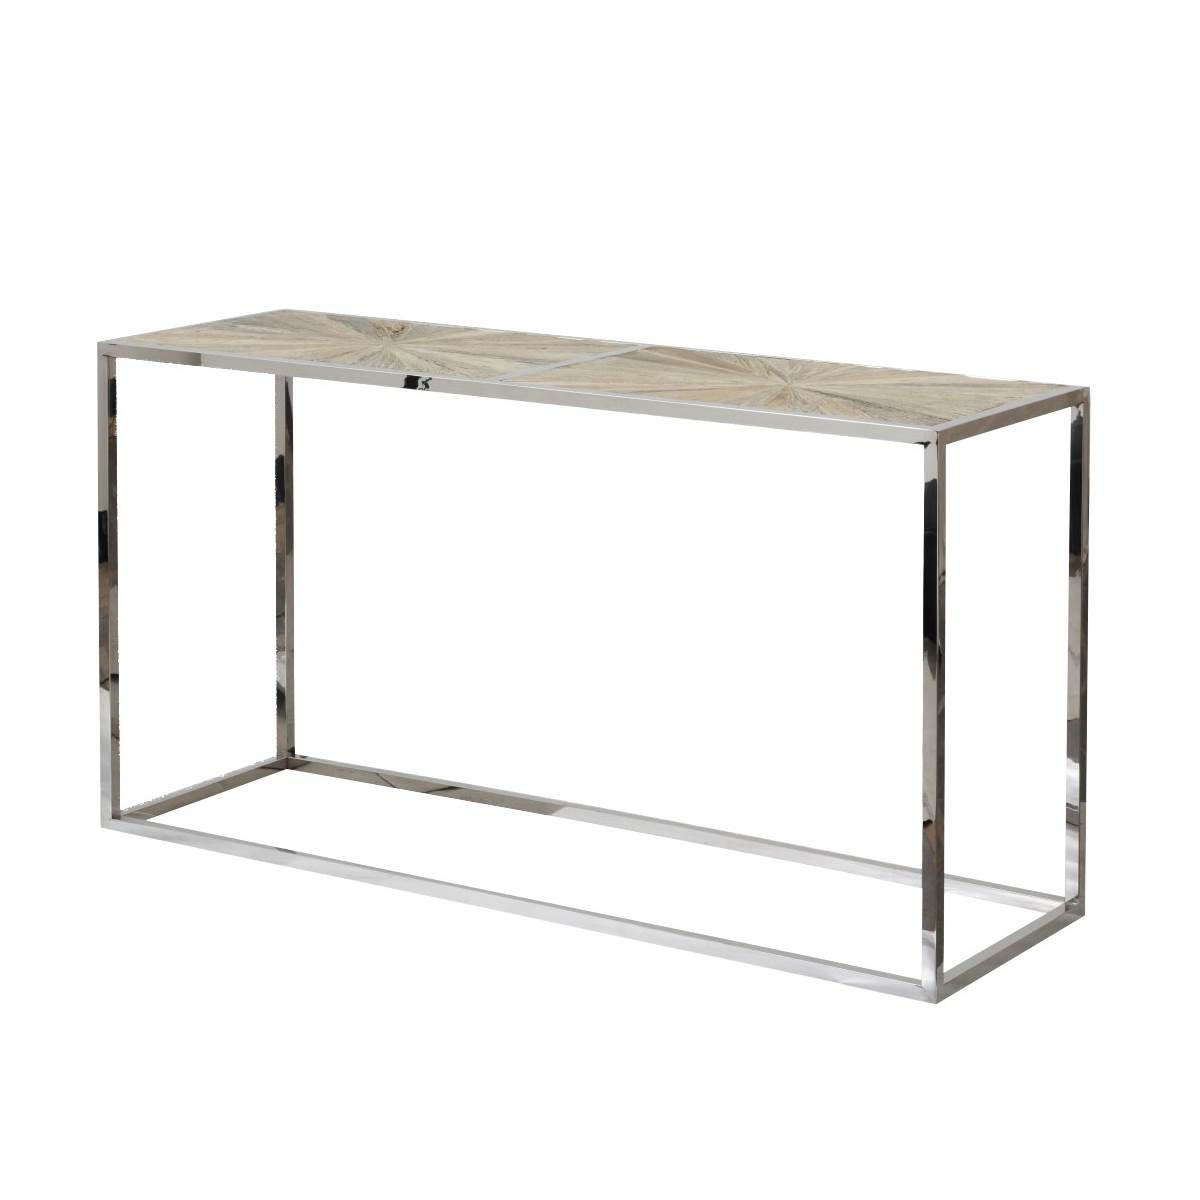 Parquet Console Table | Marshall | Pinterest For Parsons Grey Solid Surface Top & Stainless Steel Base 48X16 Console Tables (Gallery 6 of 20)